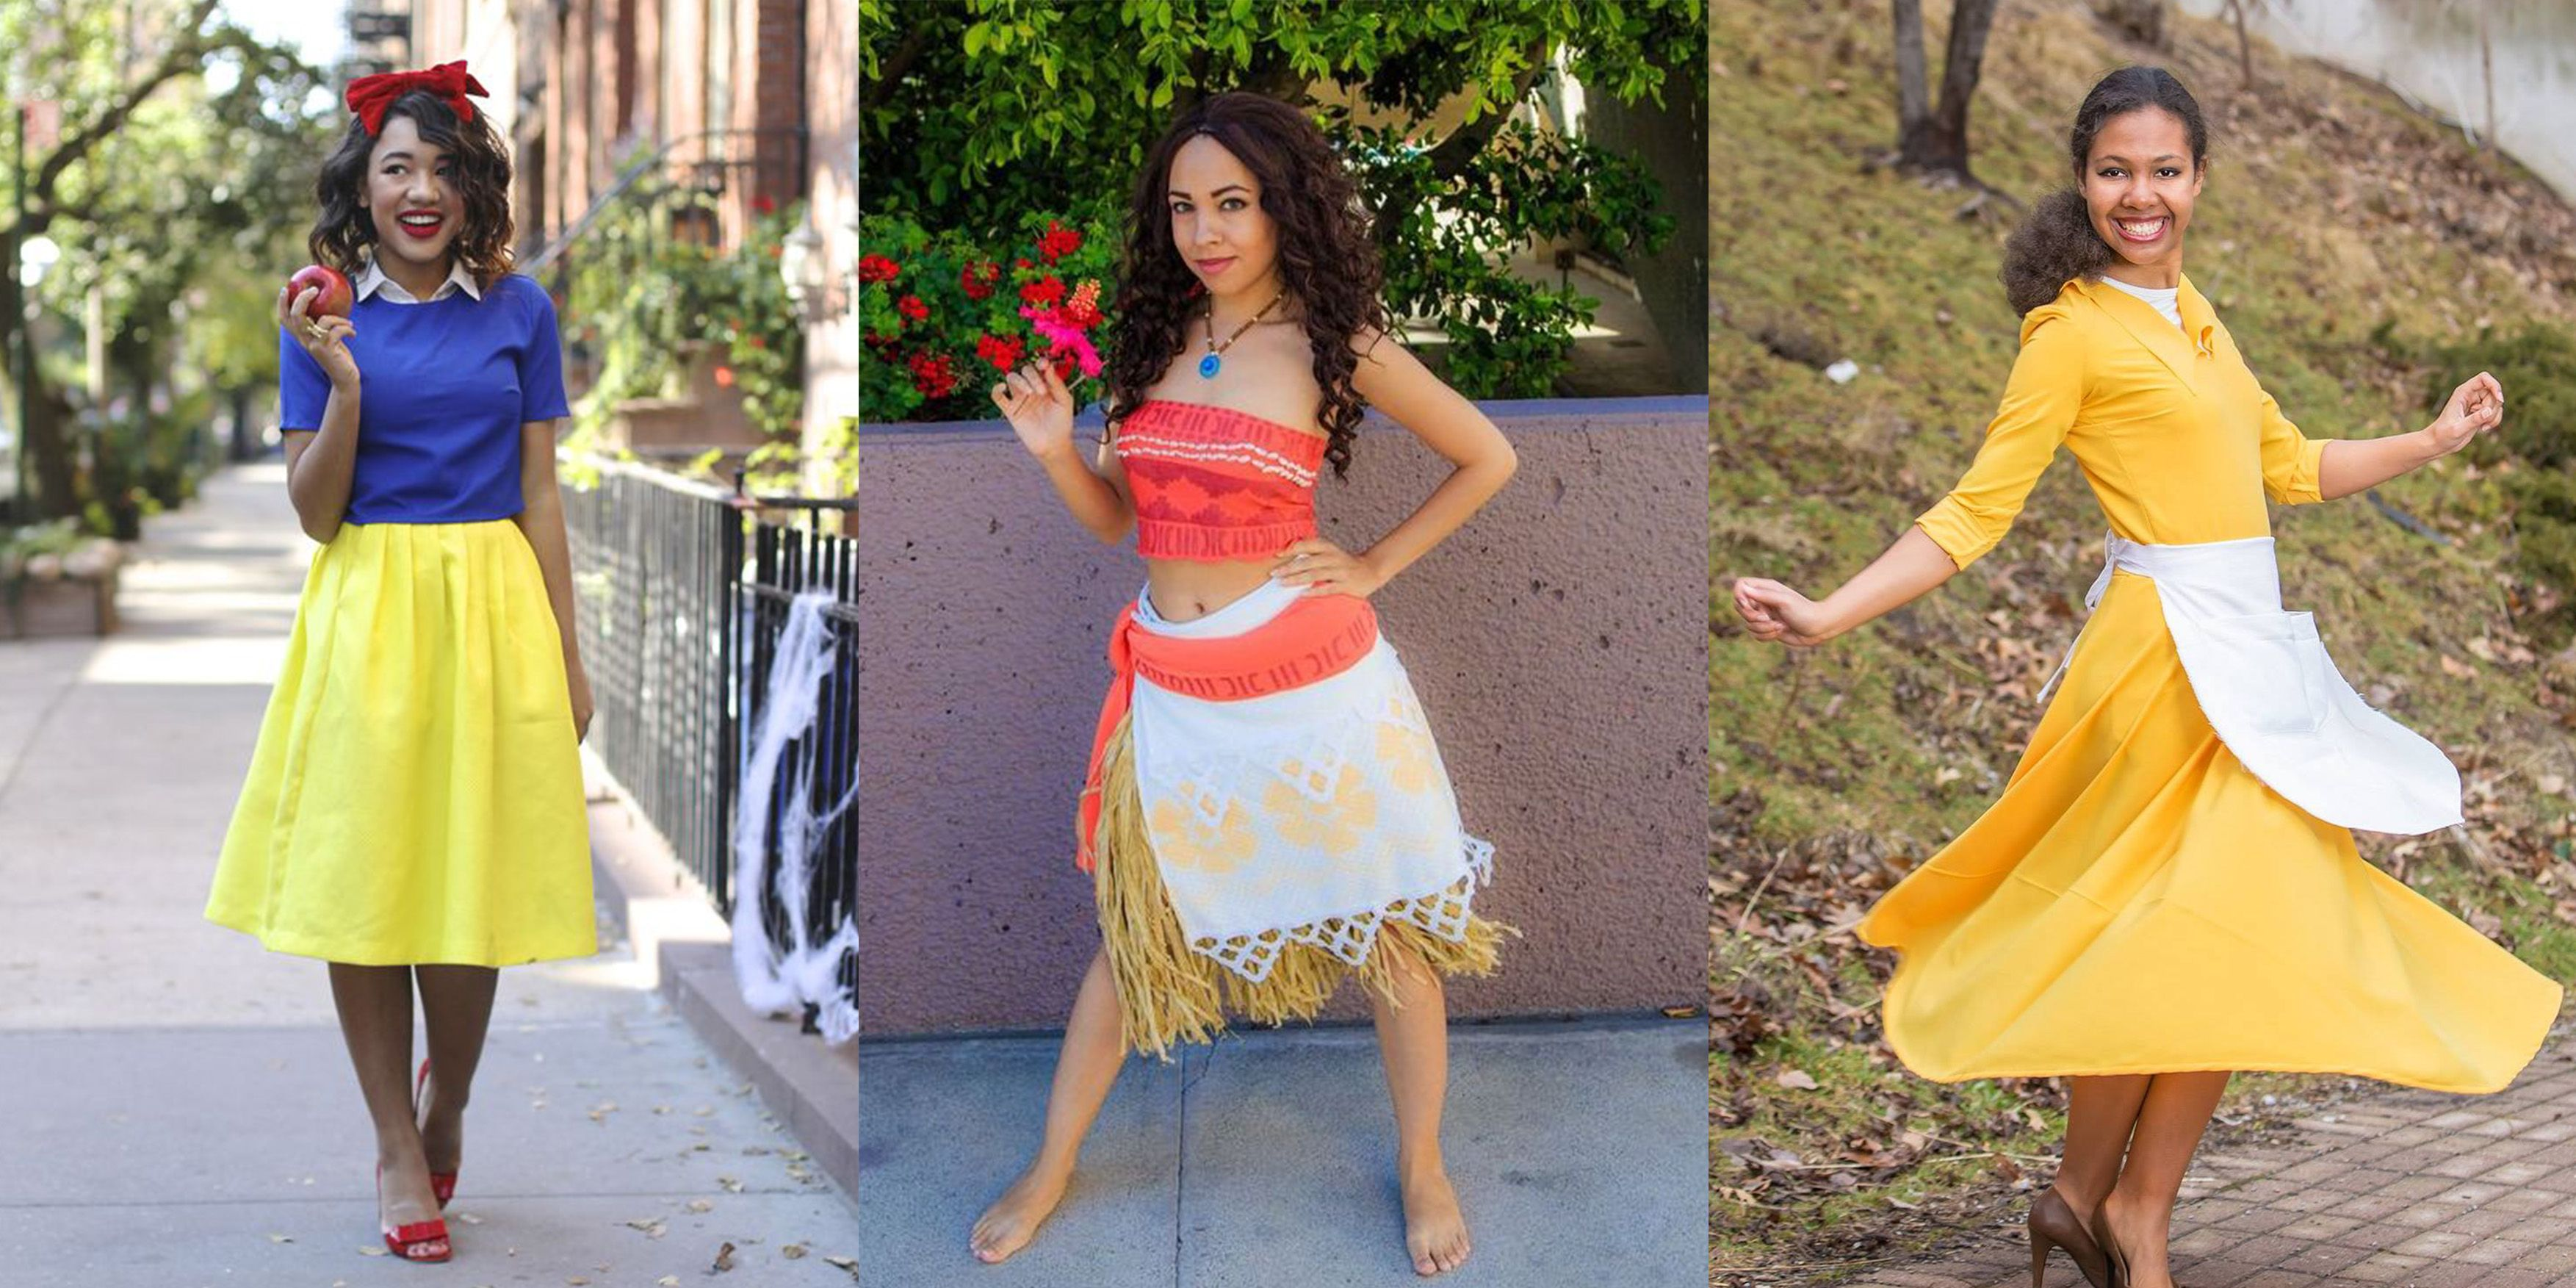 13 diy disney princess halloween costumes - princess costume ideas